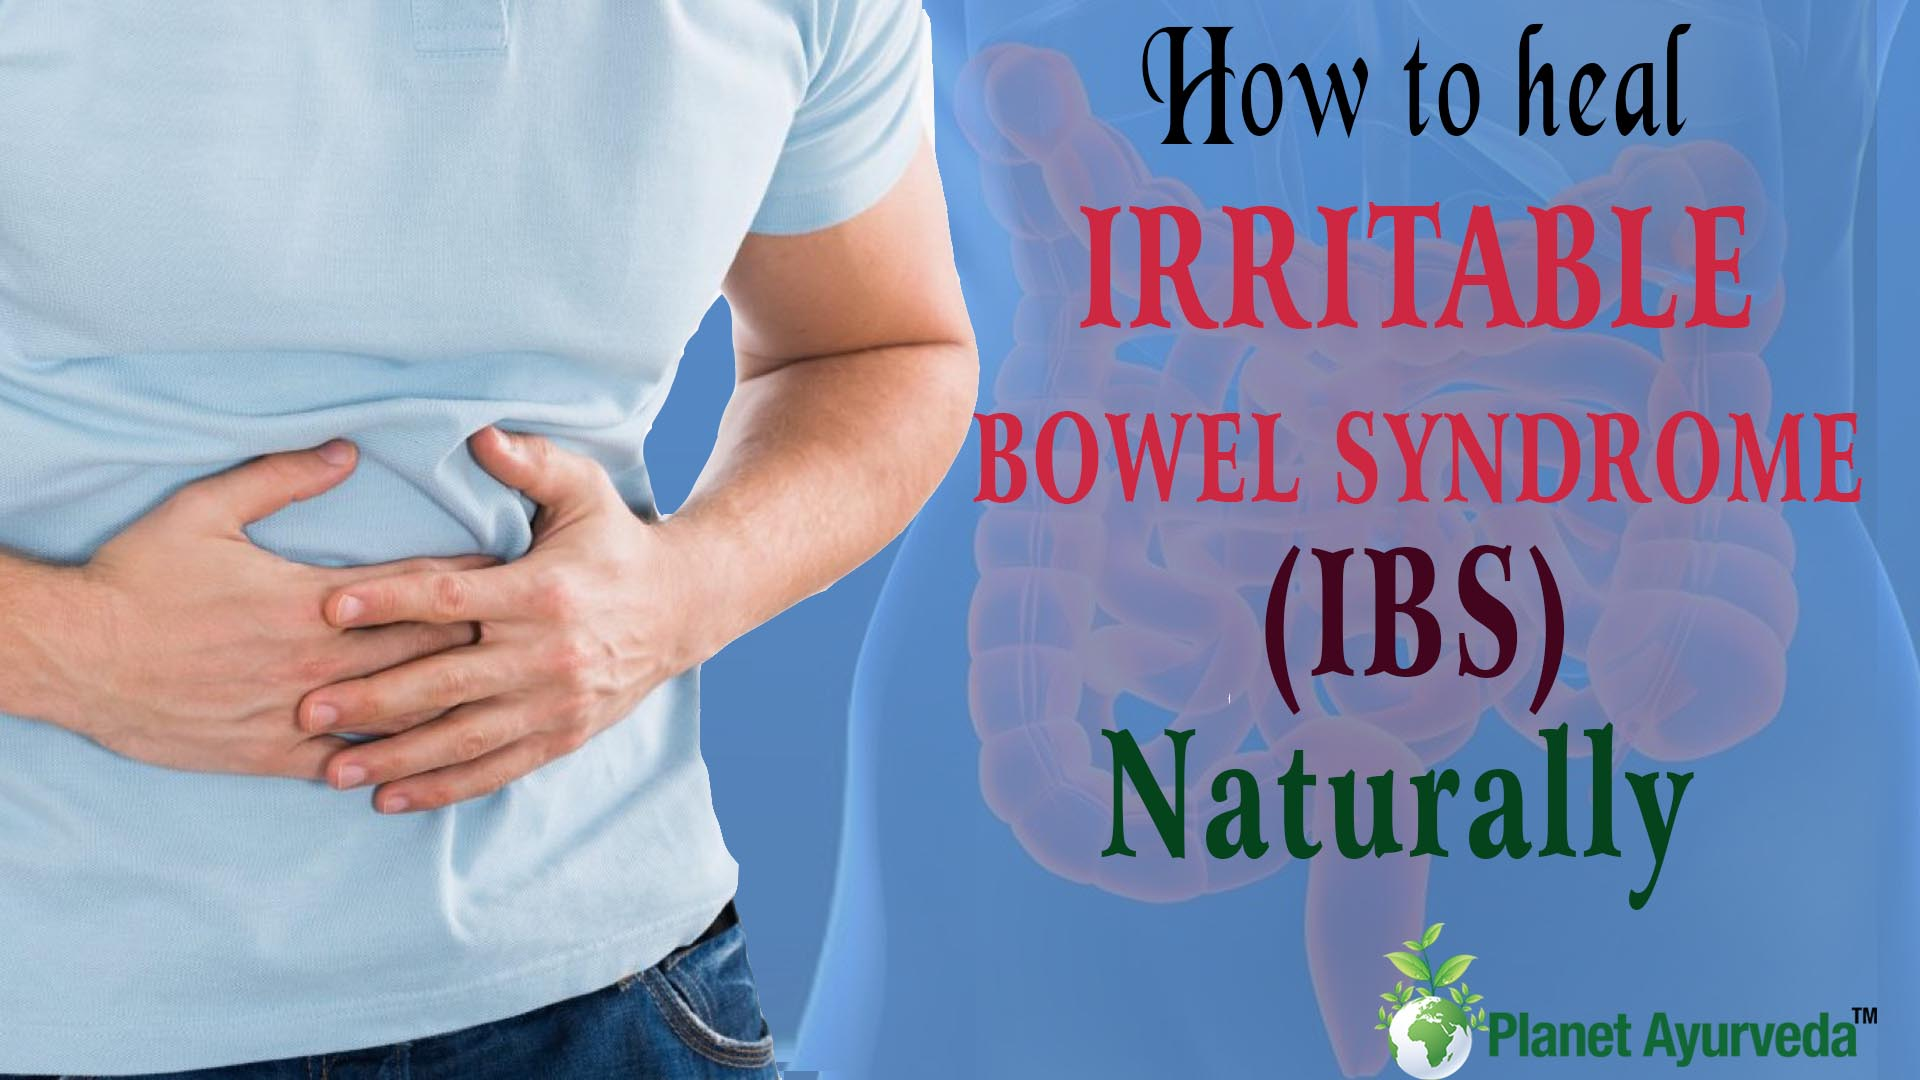 How to heal irritable bowel syndrome naturally